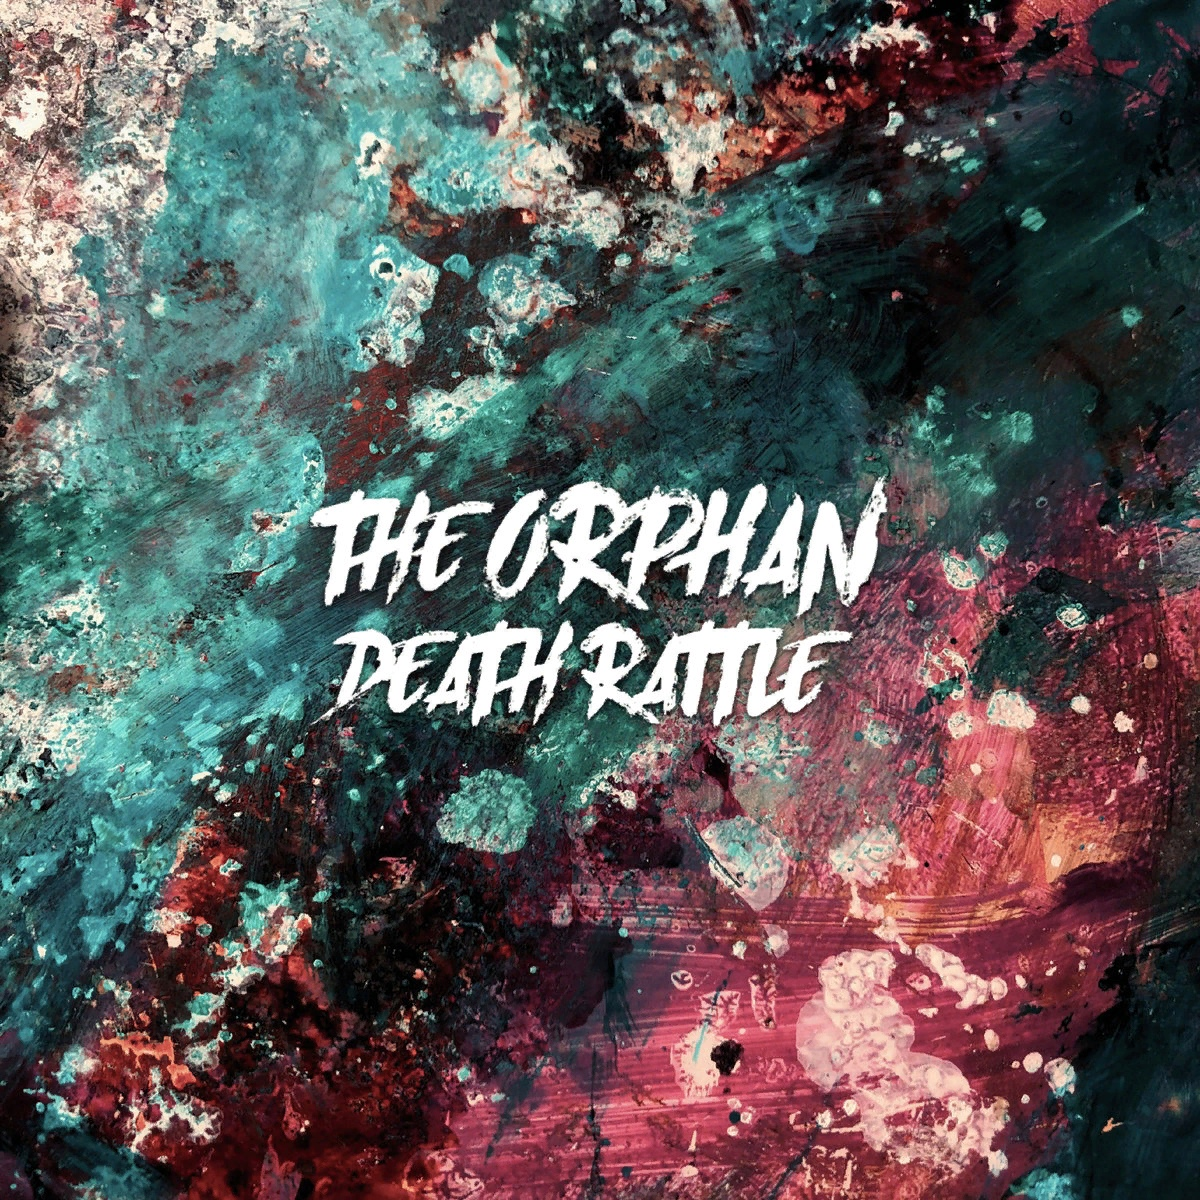 The Orphan - Death Rattle (2019)